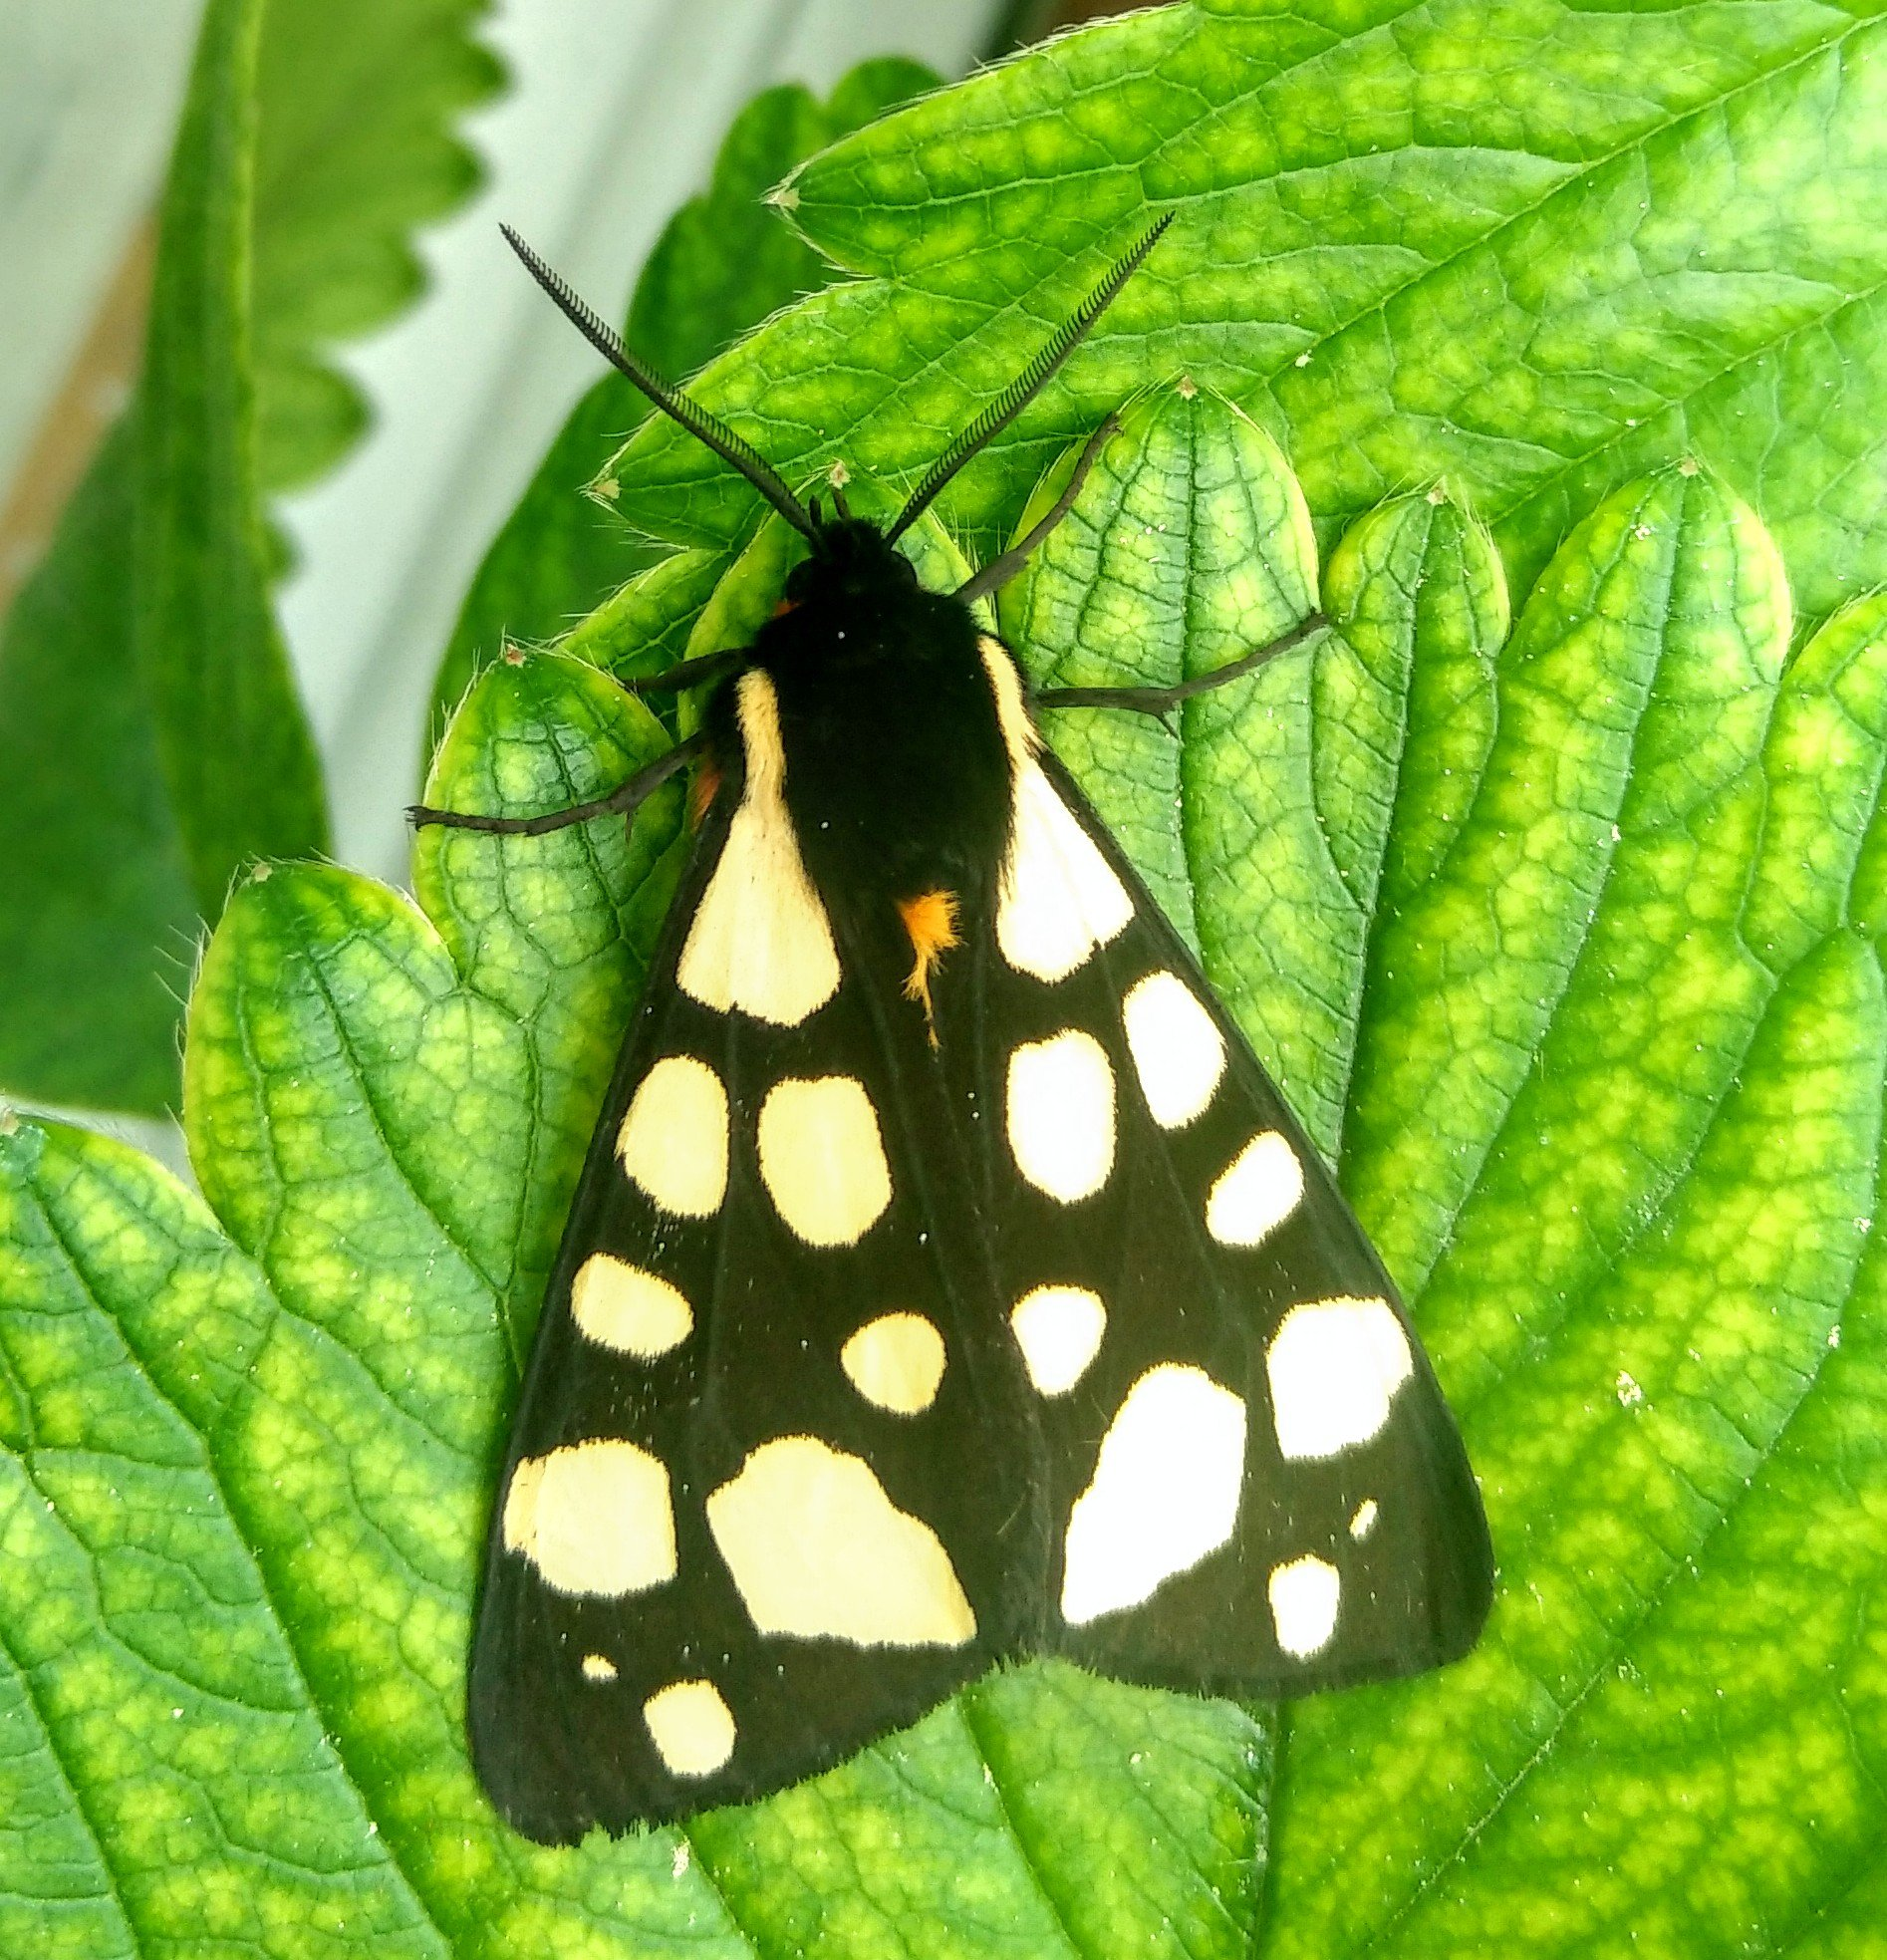 Black and white moth butterfly on green strawberry leaves nature photography by Tamara Jare